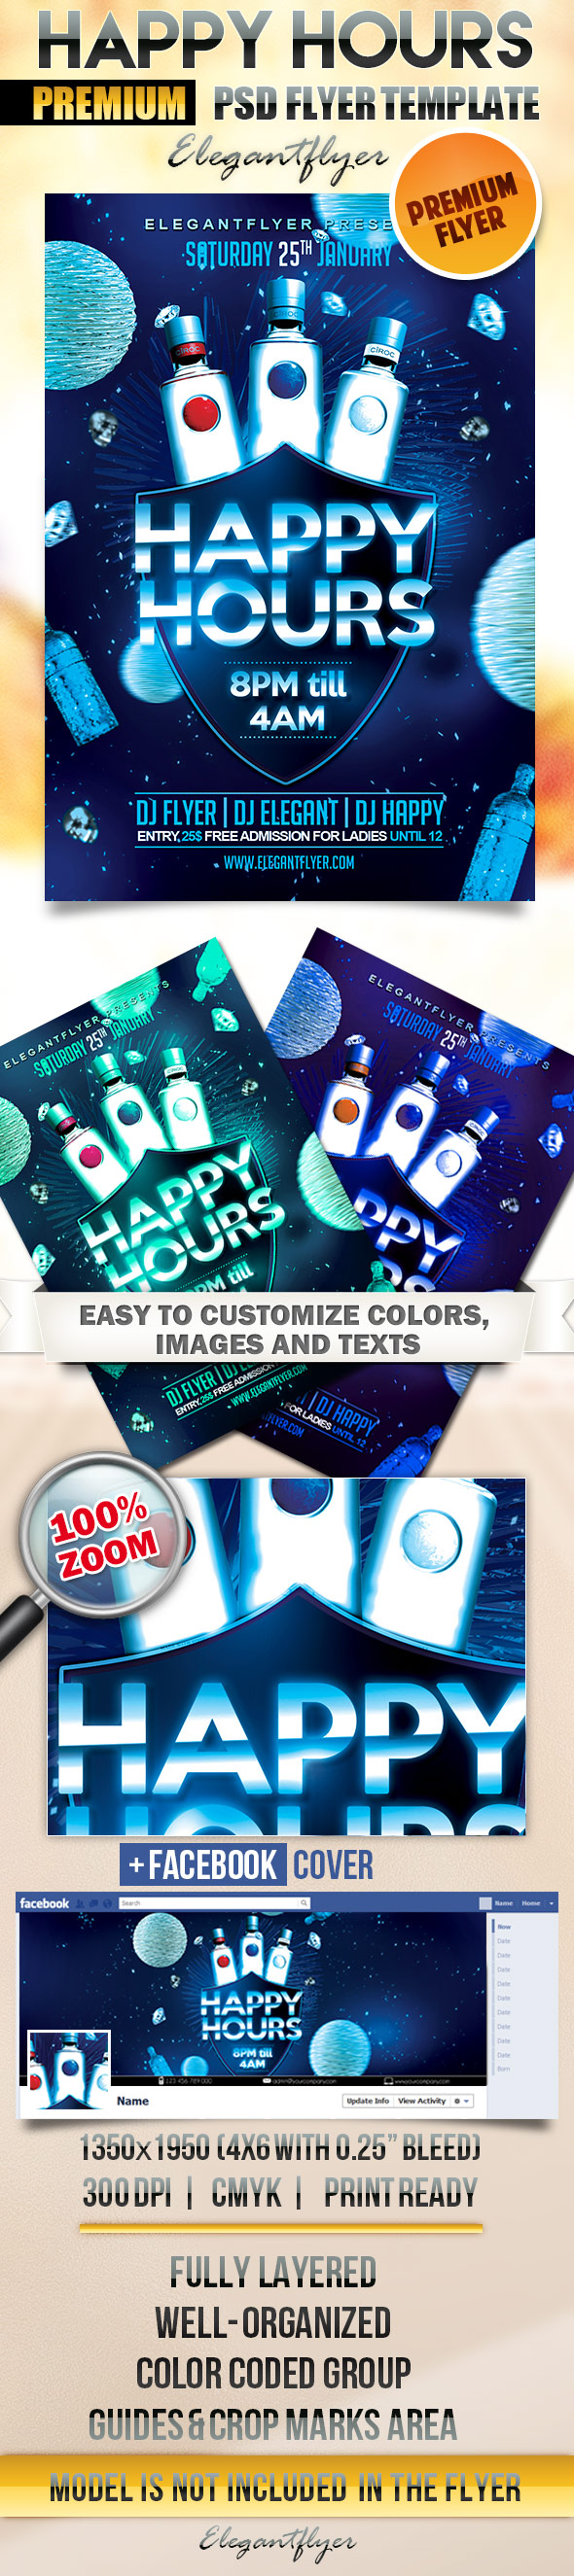 17 Happy Birthday Flyers Psd Images Birthday Party Flyer Templates